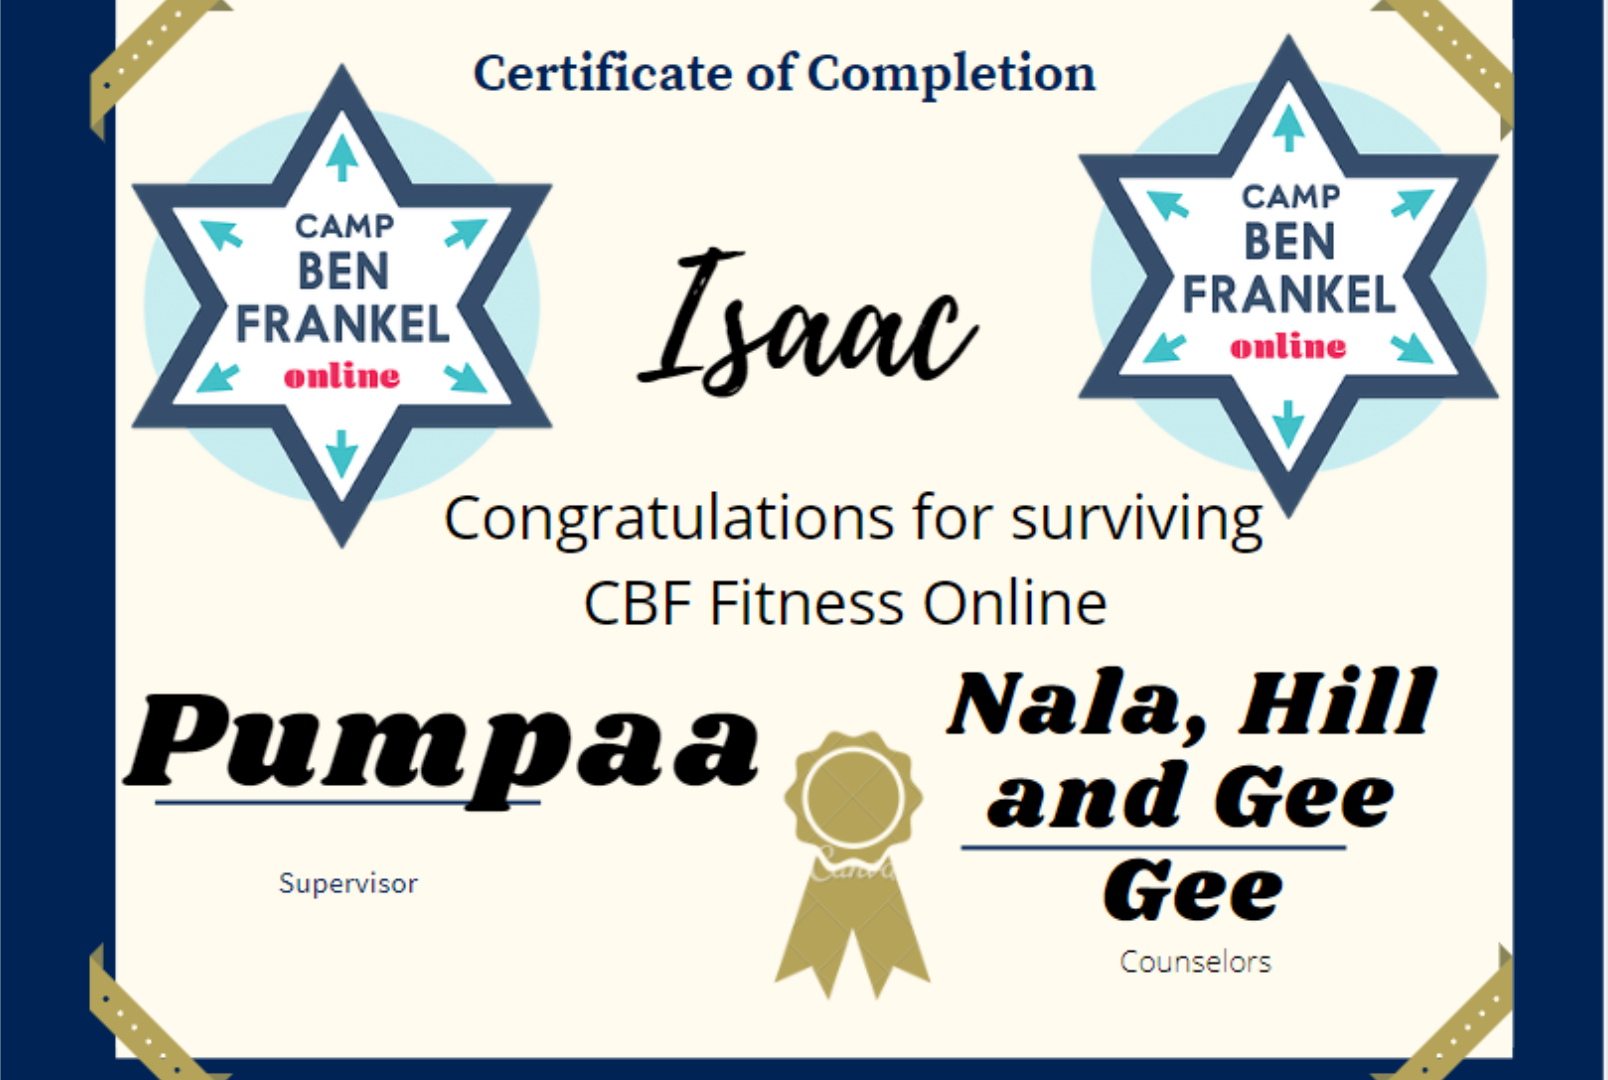 Isaac - Certificate of Completion